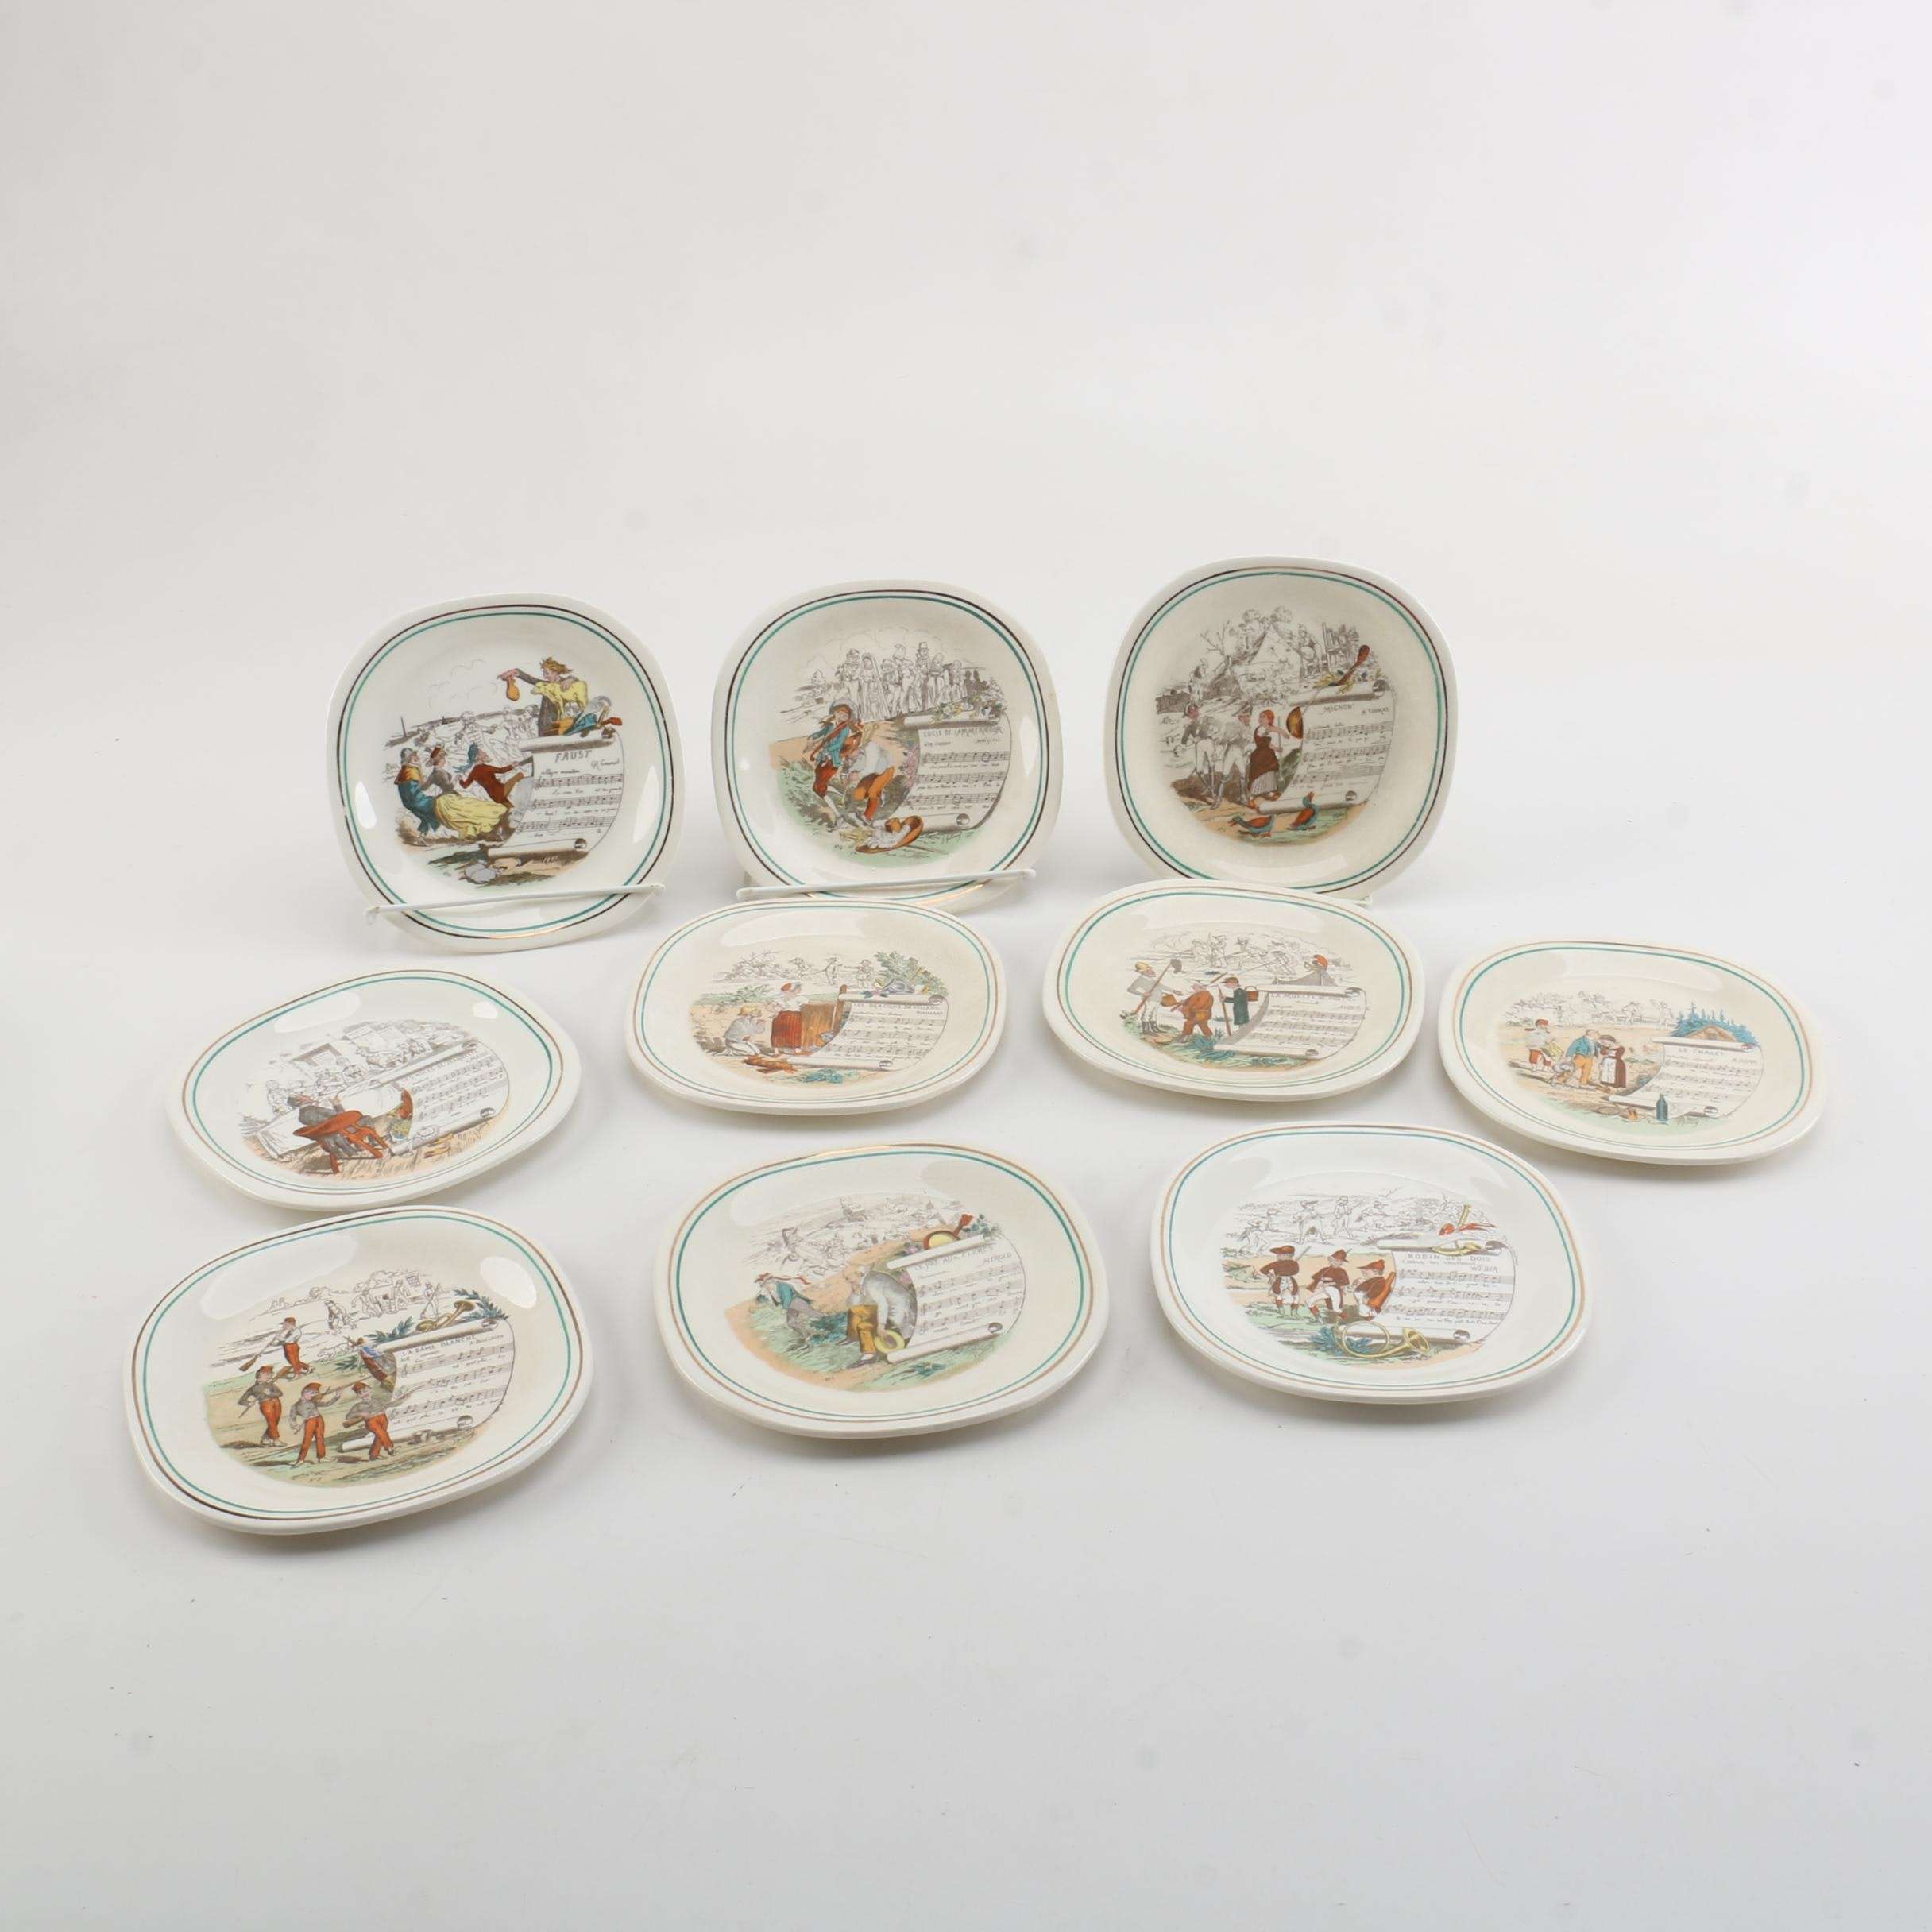 Parry & Vielle French Opera Motif Plates